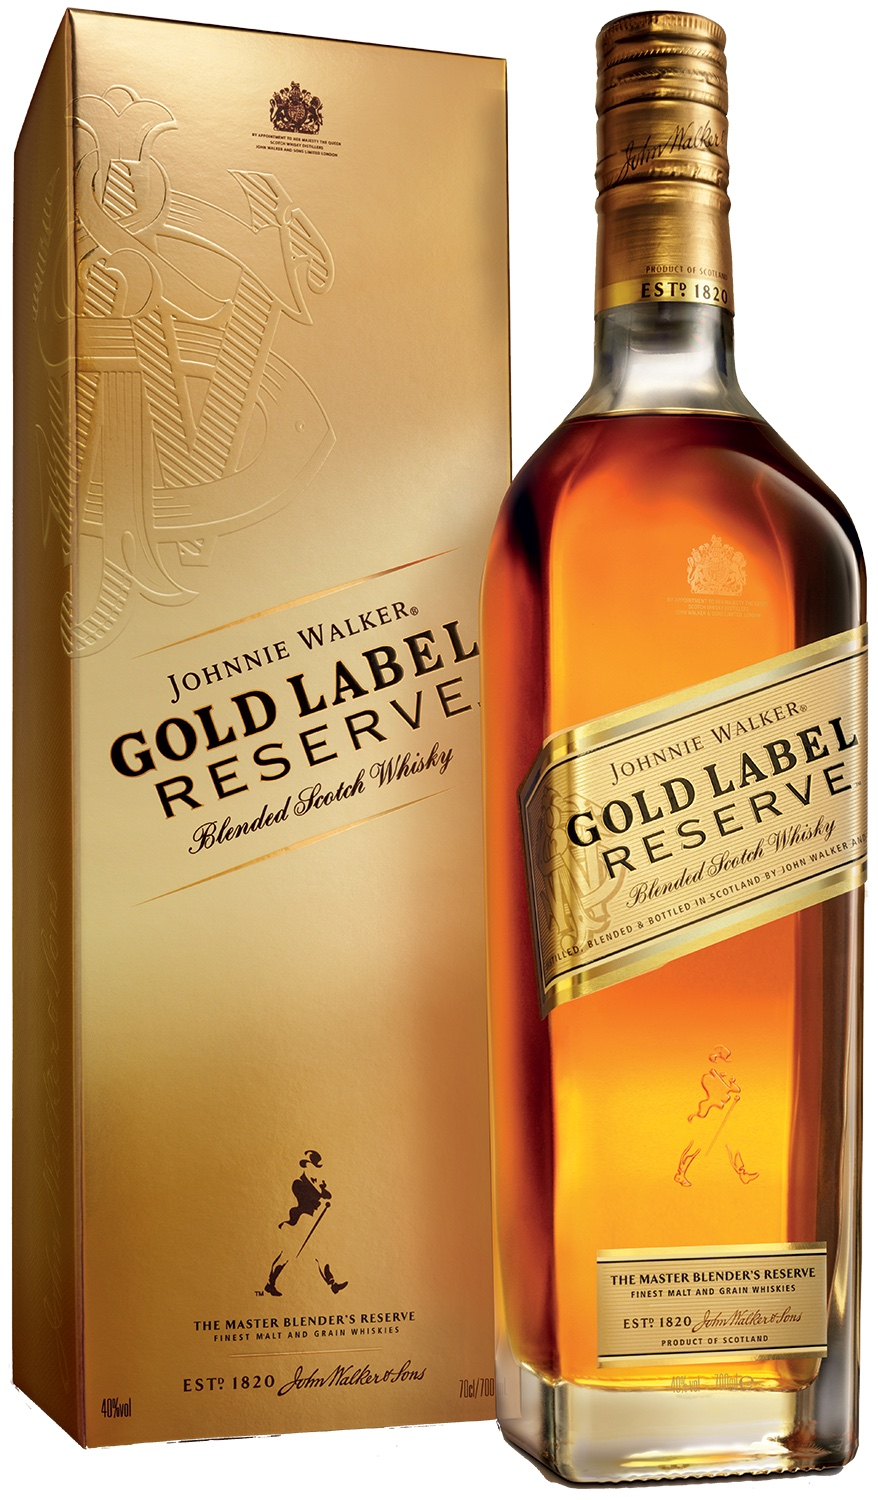 Johnnie Walker Gold Label Reserve, gift box